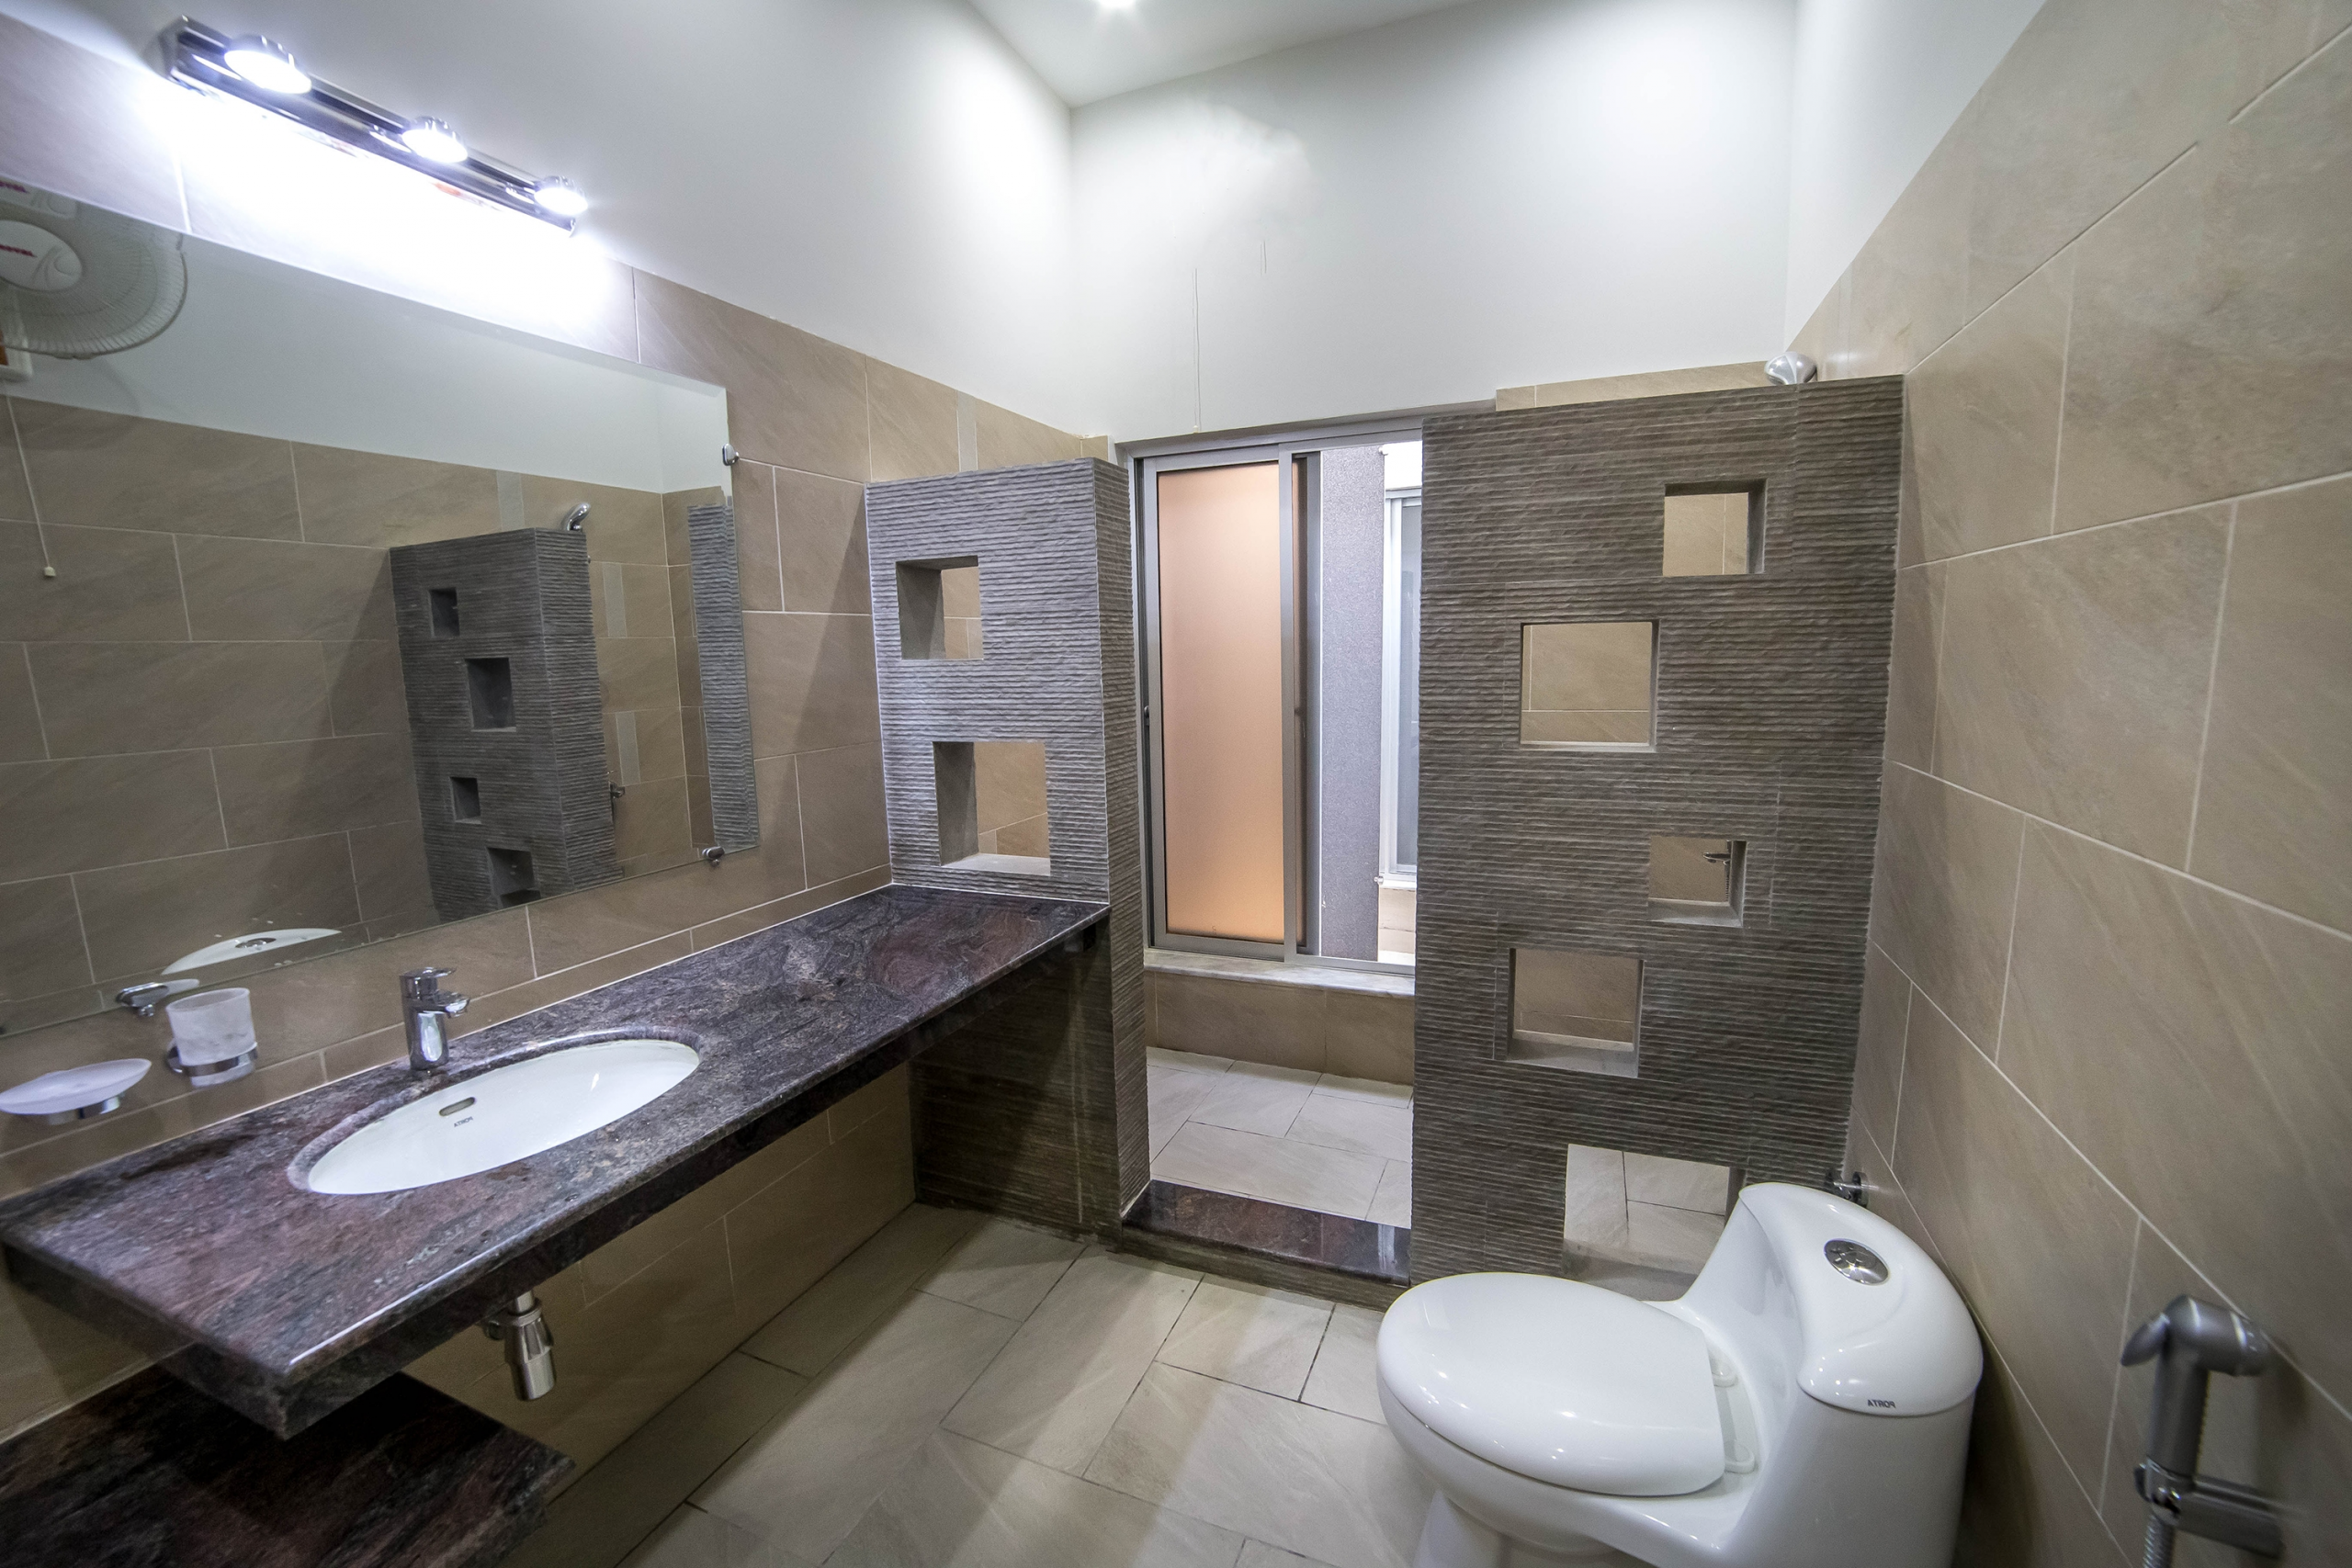 Choosing The Right Tiles For Your Bathroom Tiles Design For Bathroom In Pakistan